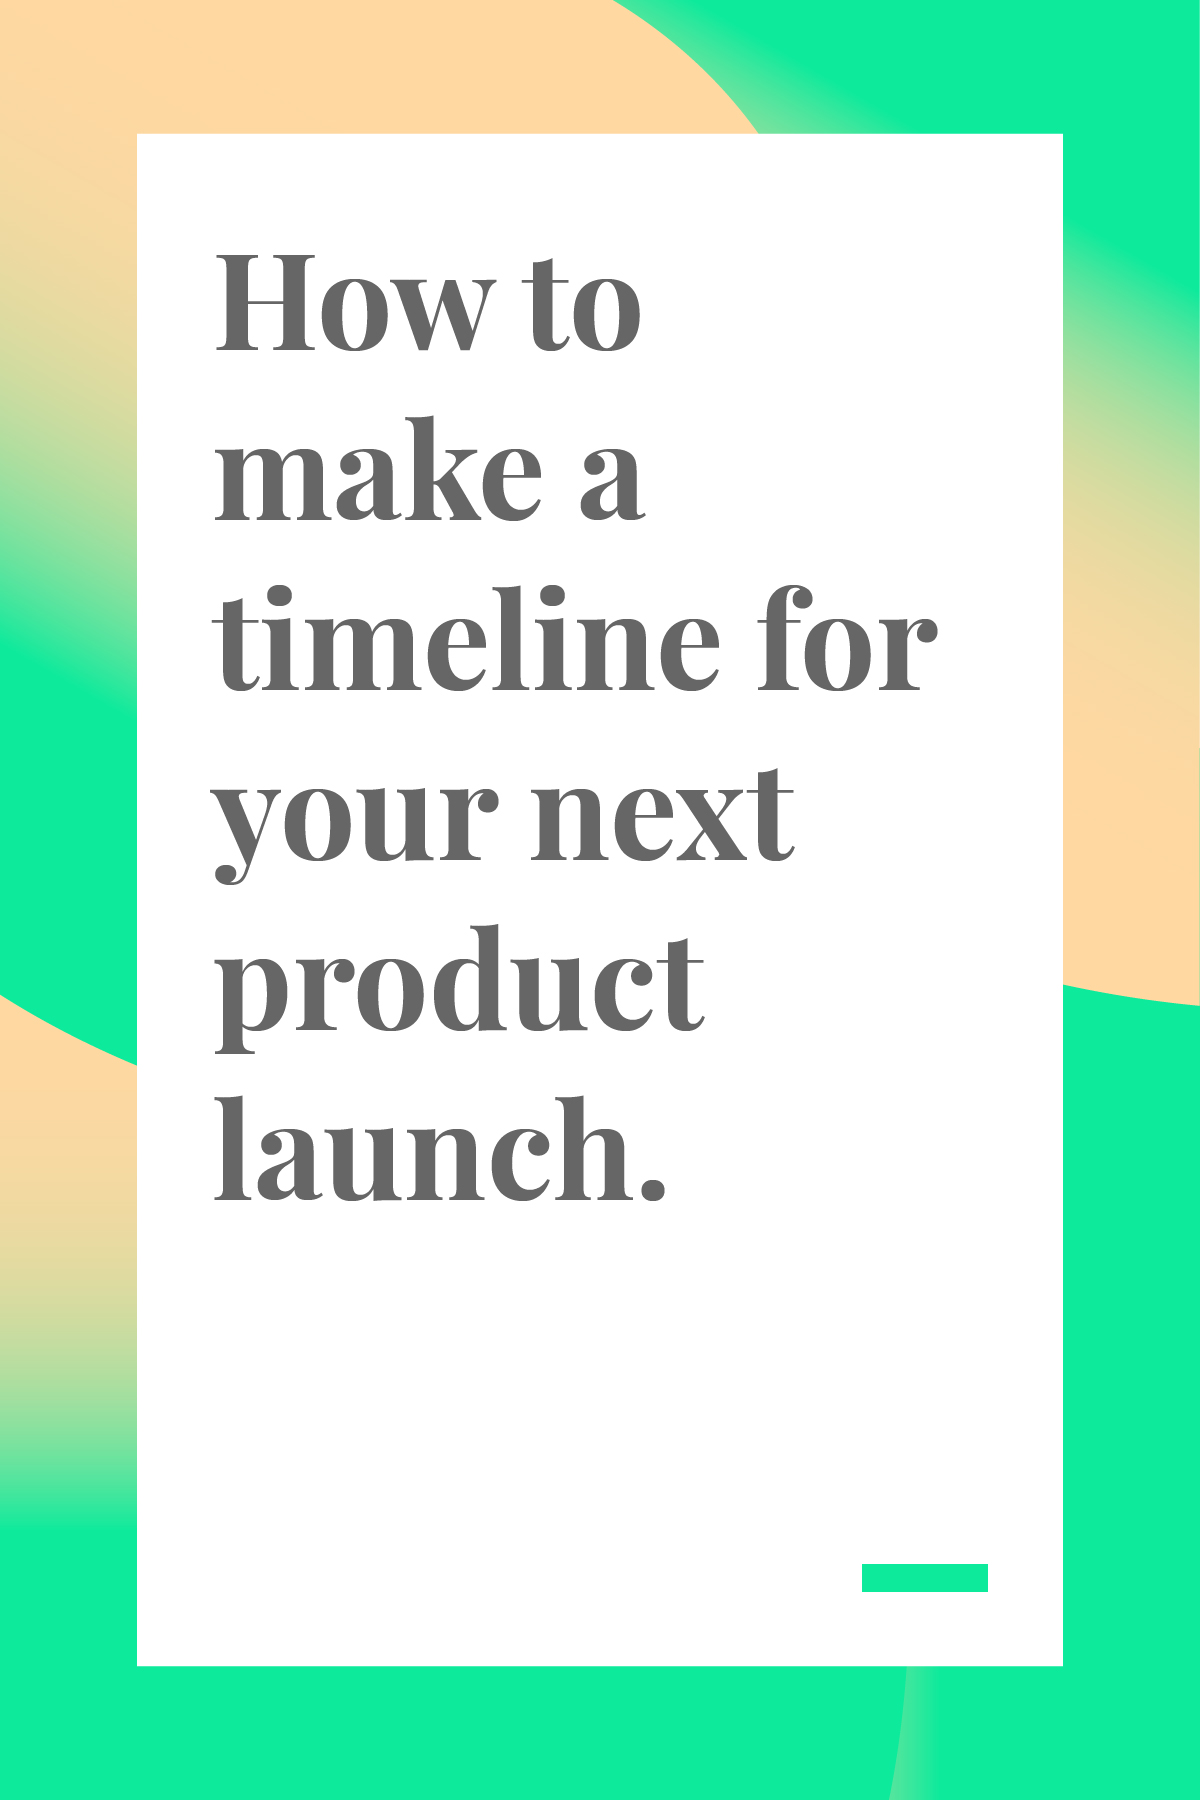 Ready to launch your first or next product? These timeline tips will help you stay on track so you can launch quickly and easily.